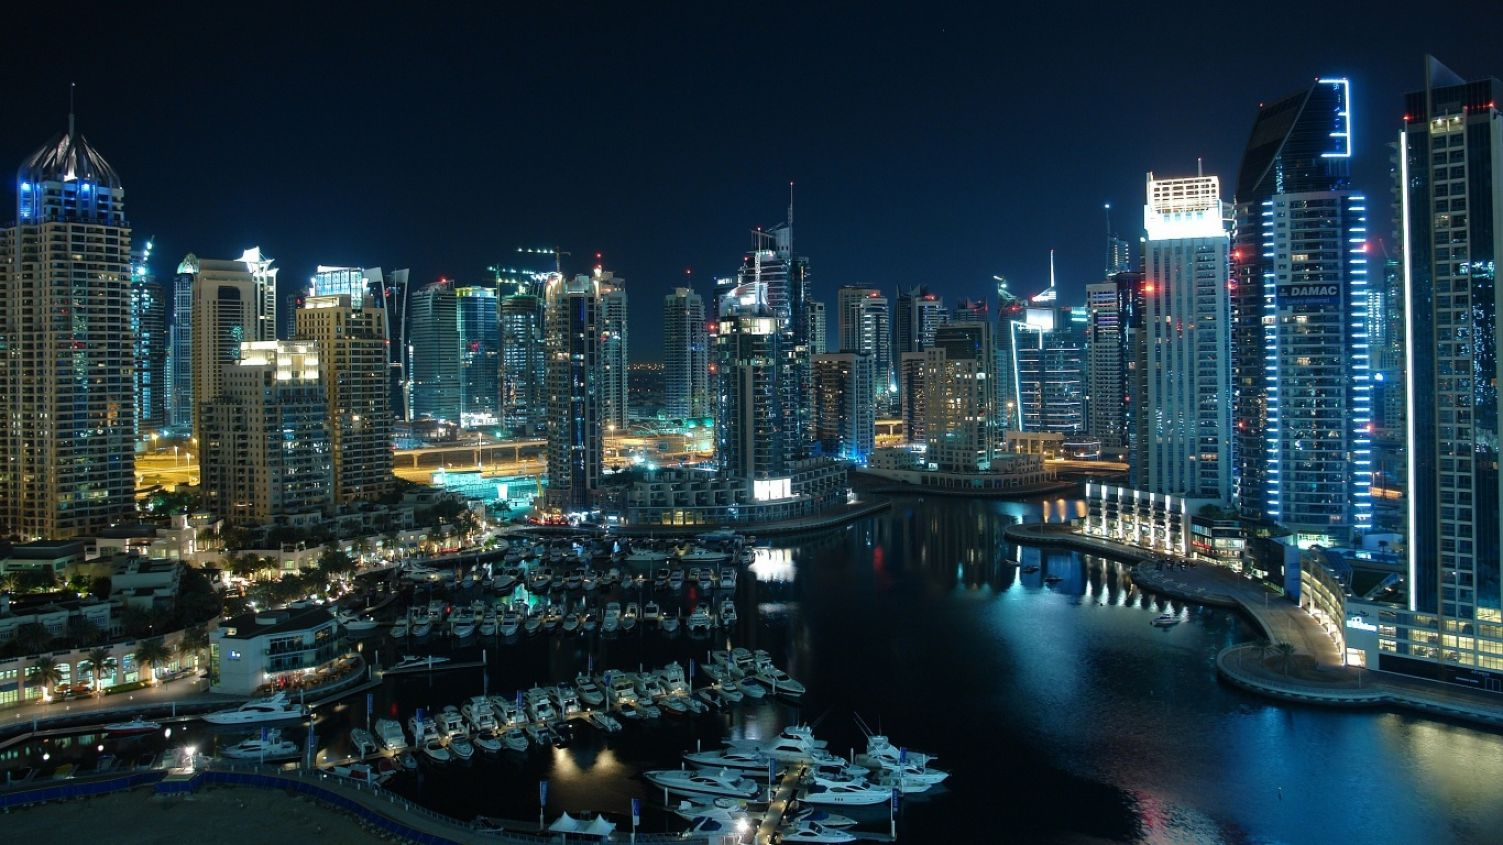 Download free HD City Dubai HD Wallpaper, image